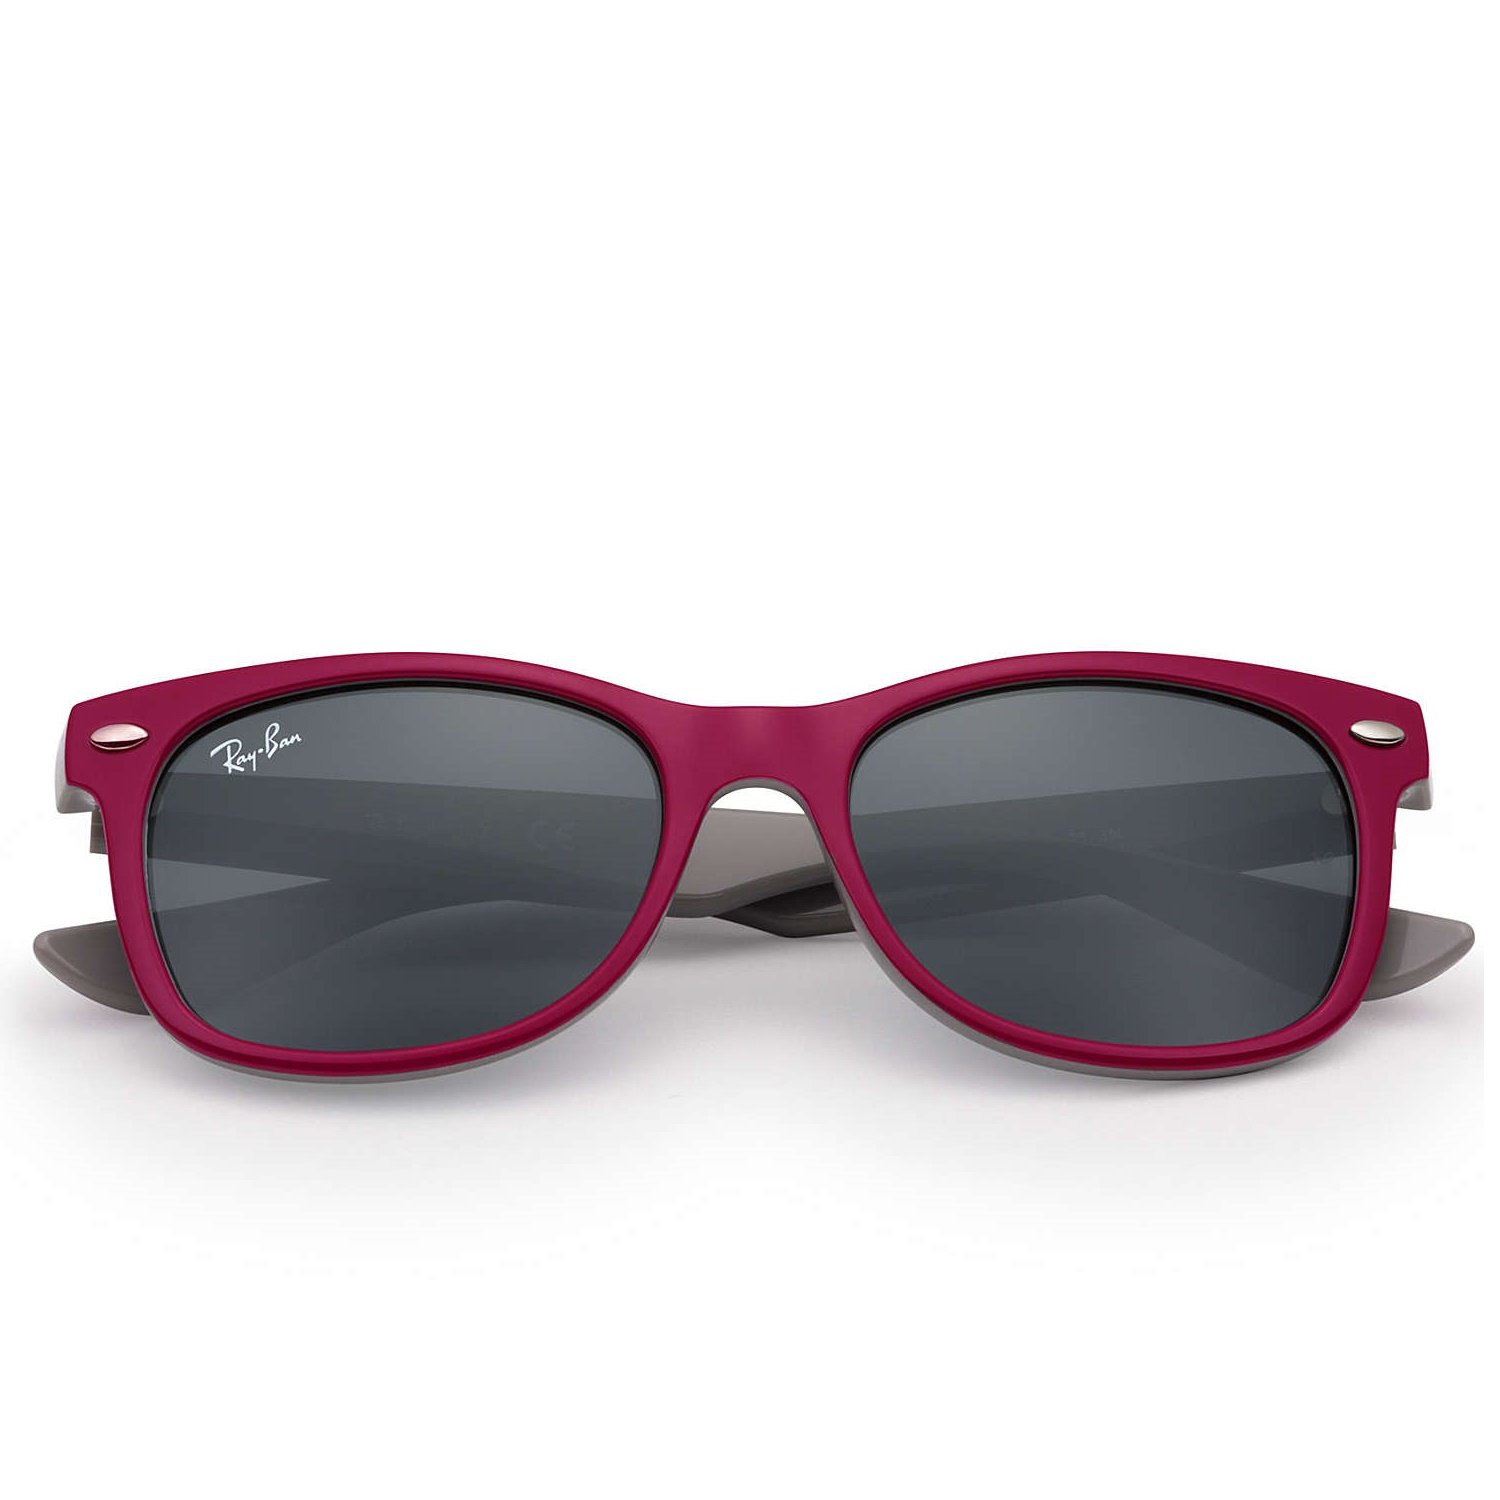 Ray-Ban Jr New Wayfarer Sunglasses - Berry Red/Grey - 47mm